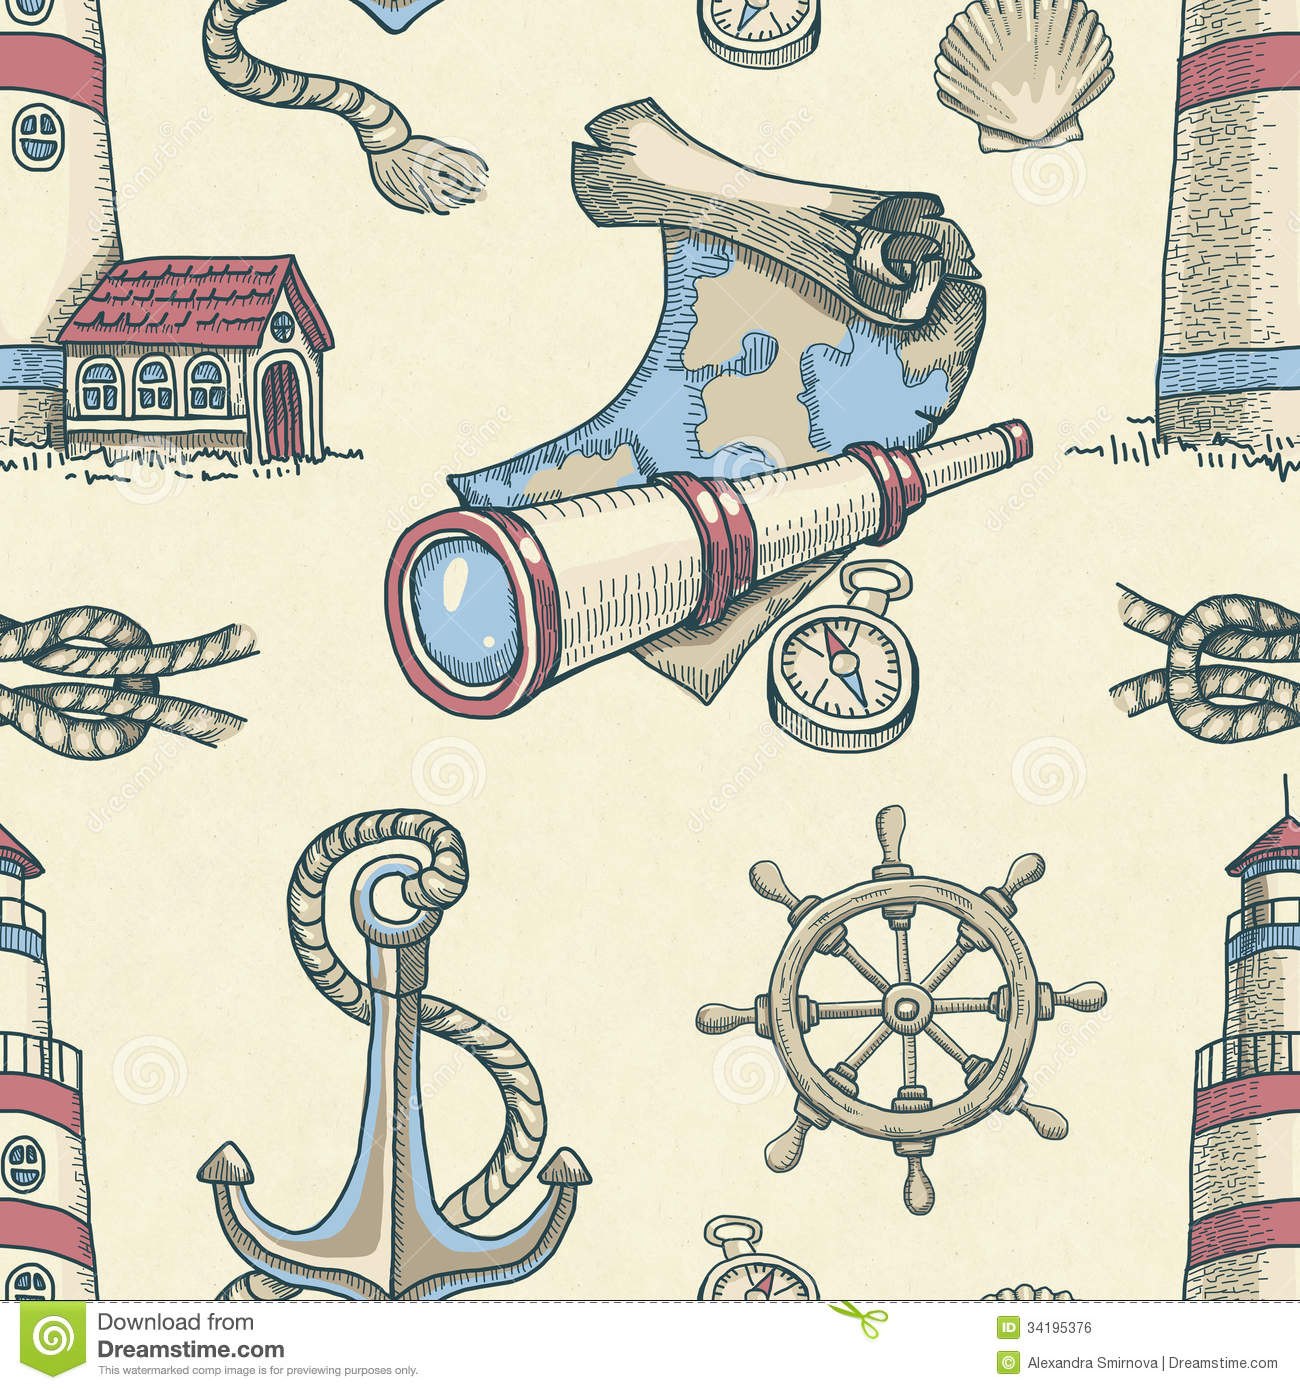 Nautical Seamless Pattern Royalty Free Stock Image   Image  34195376